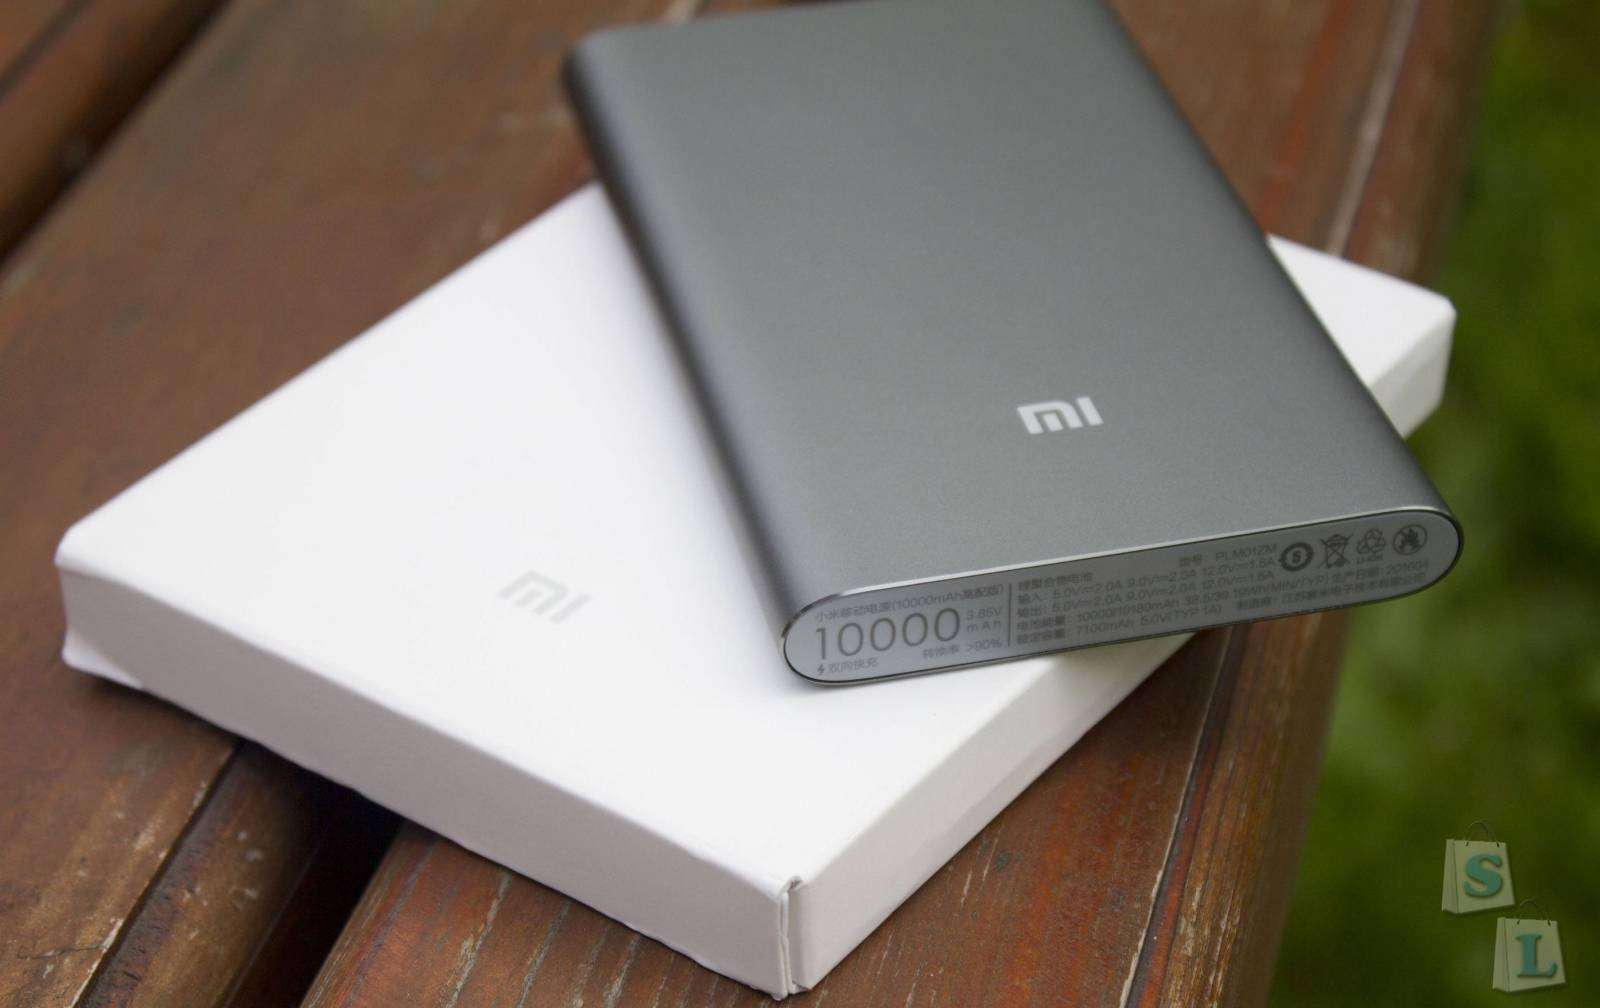 DD4: Xiaomi Mi Power Bank Pro 10000mAh